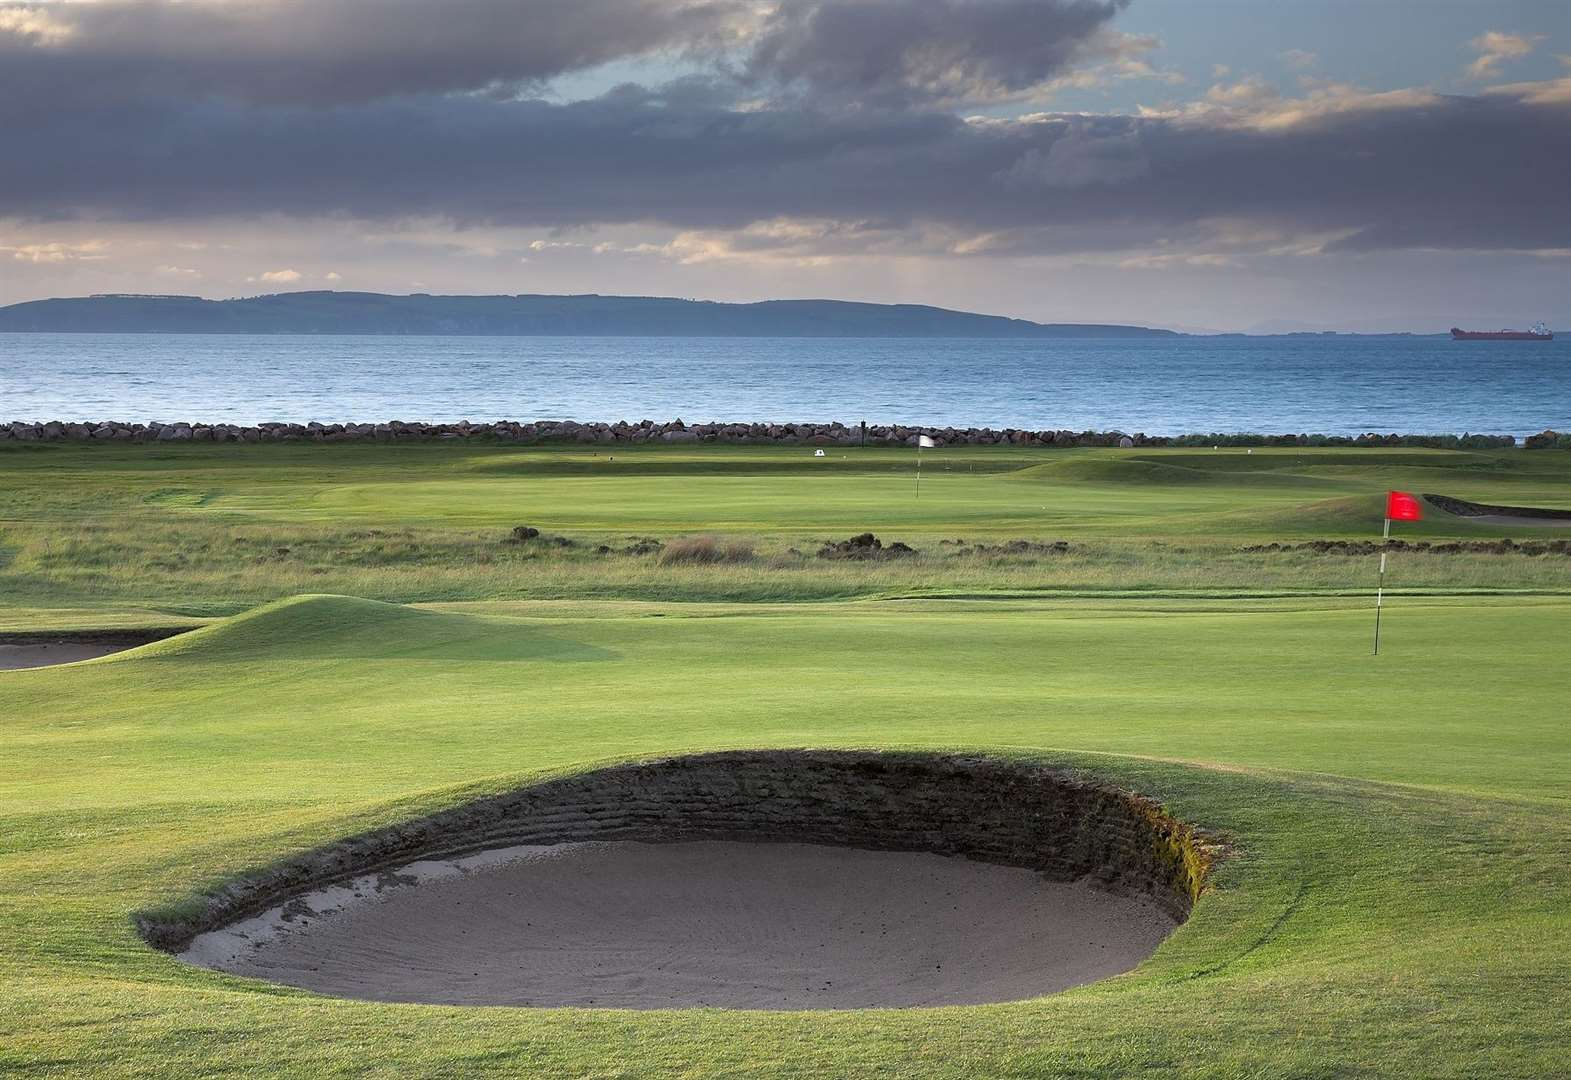 Nairn to host world's top amateur golfers in 2021